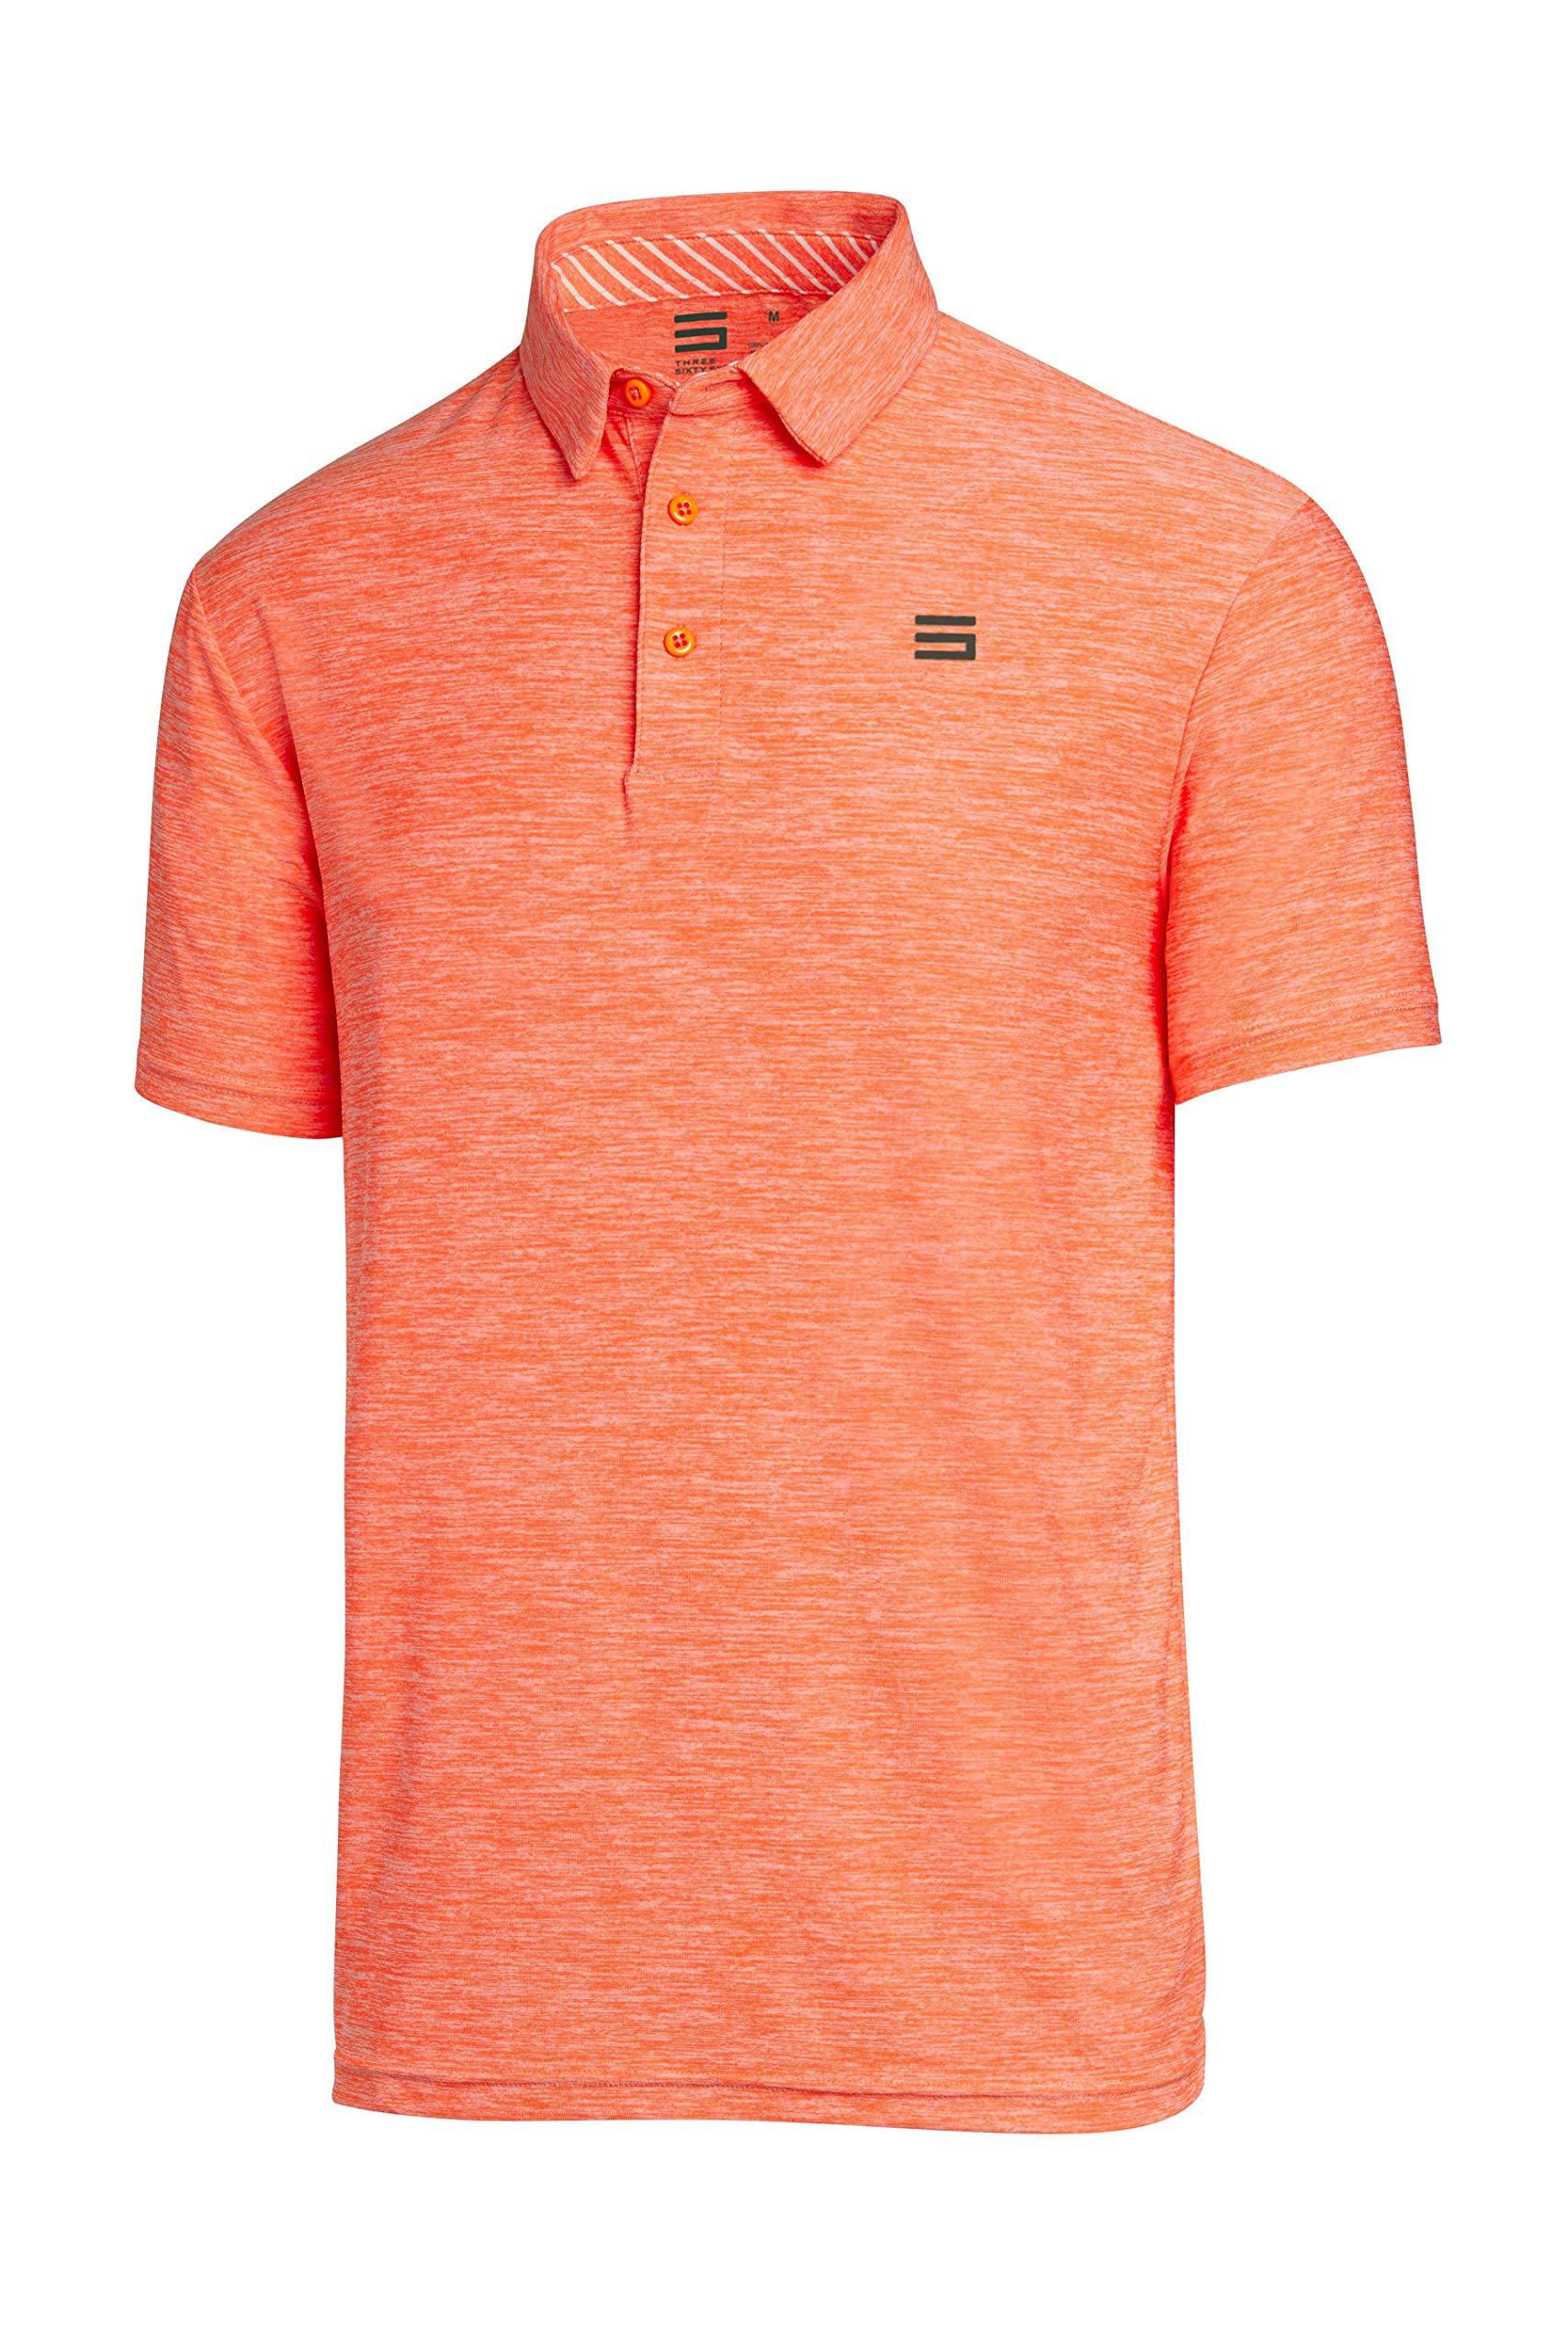 Three Sixty Six Golf Shirts for Men - Dry Fit Short-Sleeve Polo, Athletic Casual Collared T-Shirt Orange by Three Sixty Six